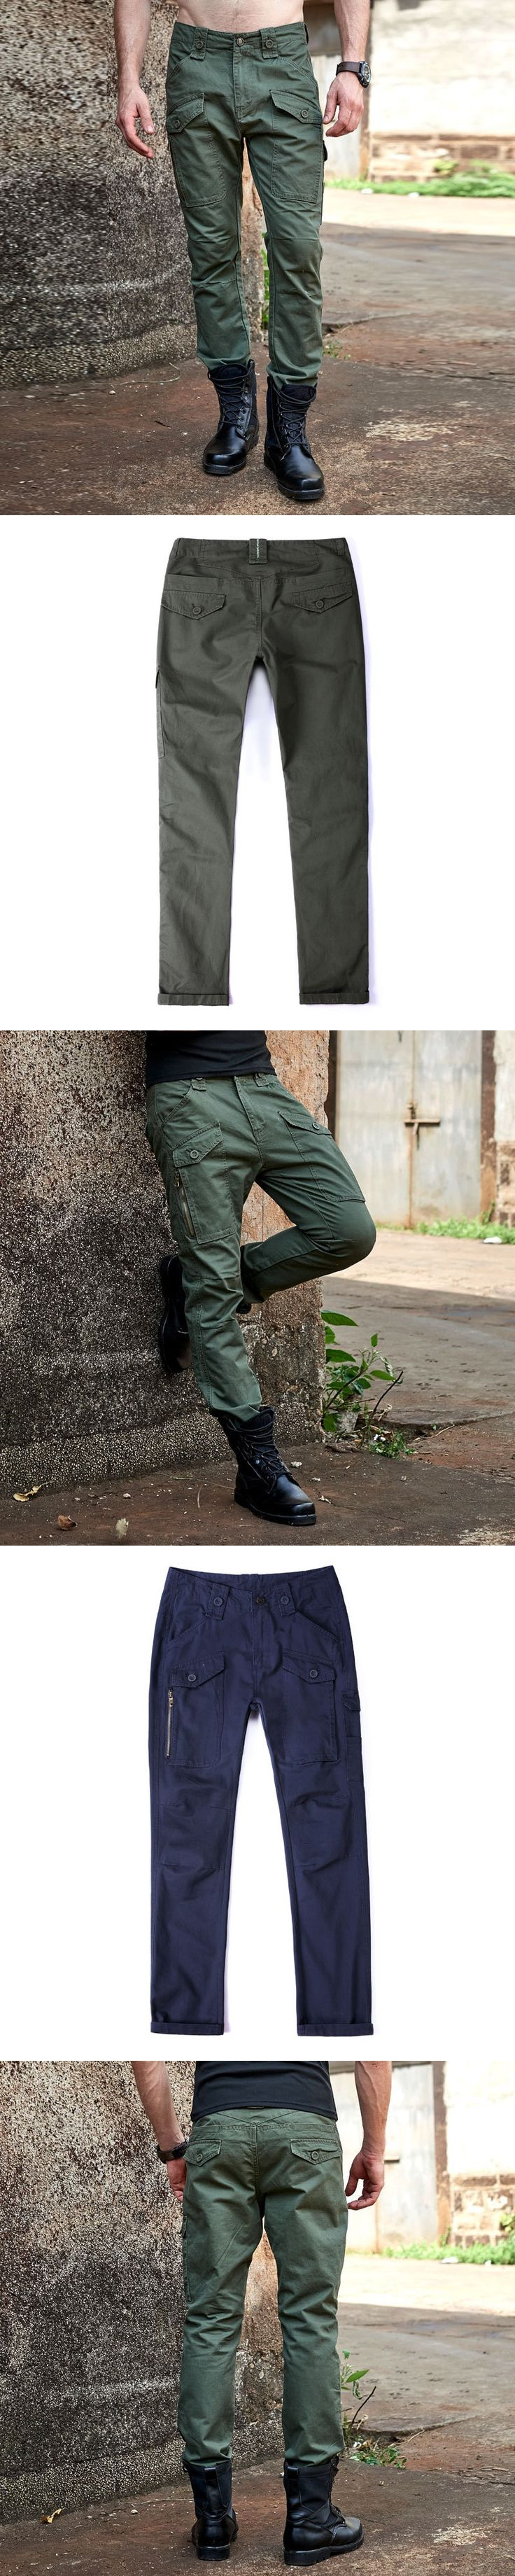 TACTICAL CARGO PANTS Overalls Men's Millitary Clothing Casual Cotton Pants Camouflage Army Style Multi Pocket Trousers